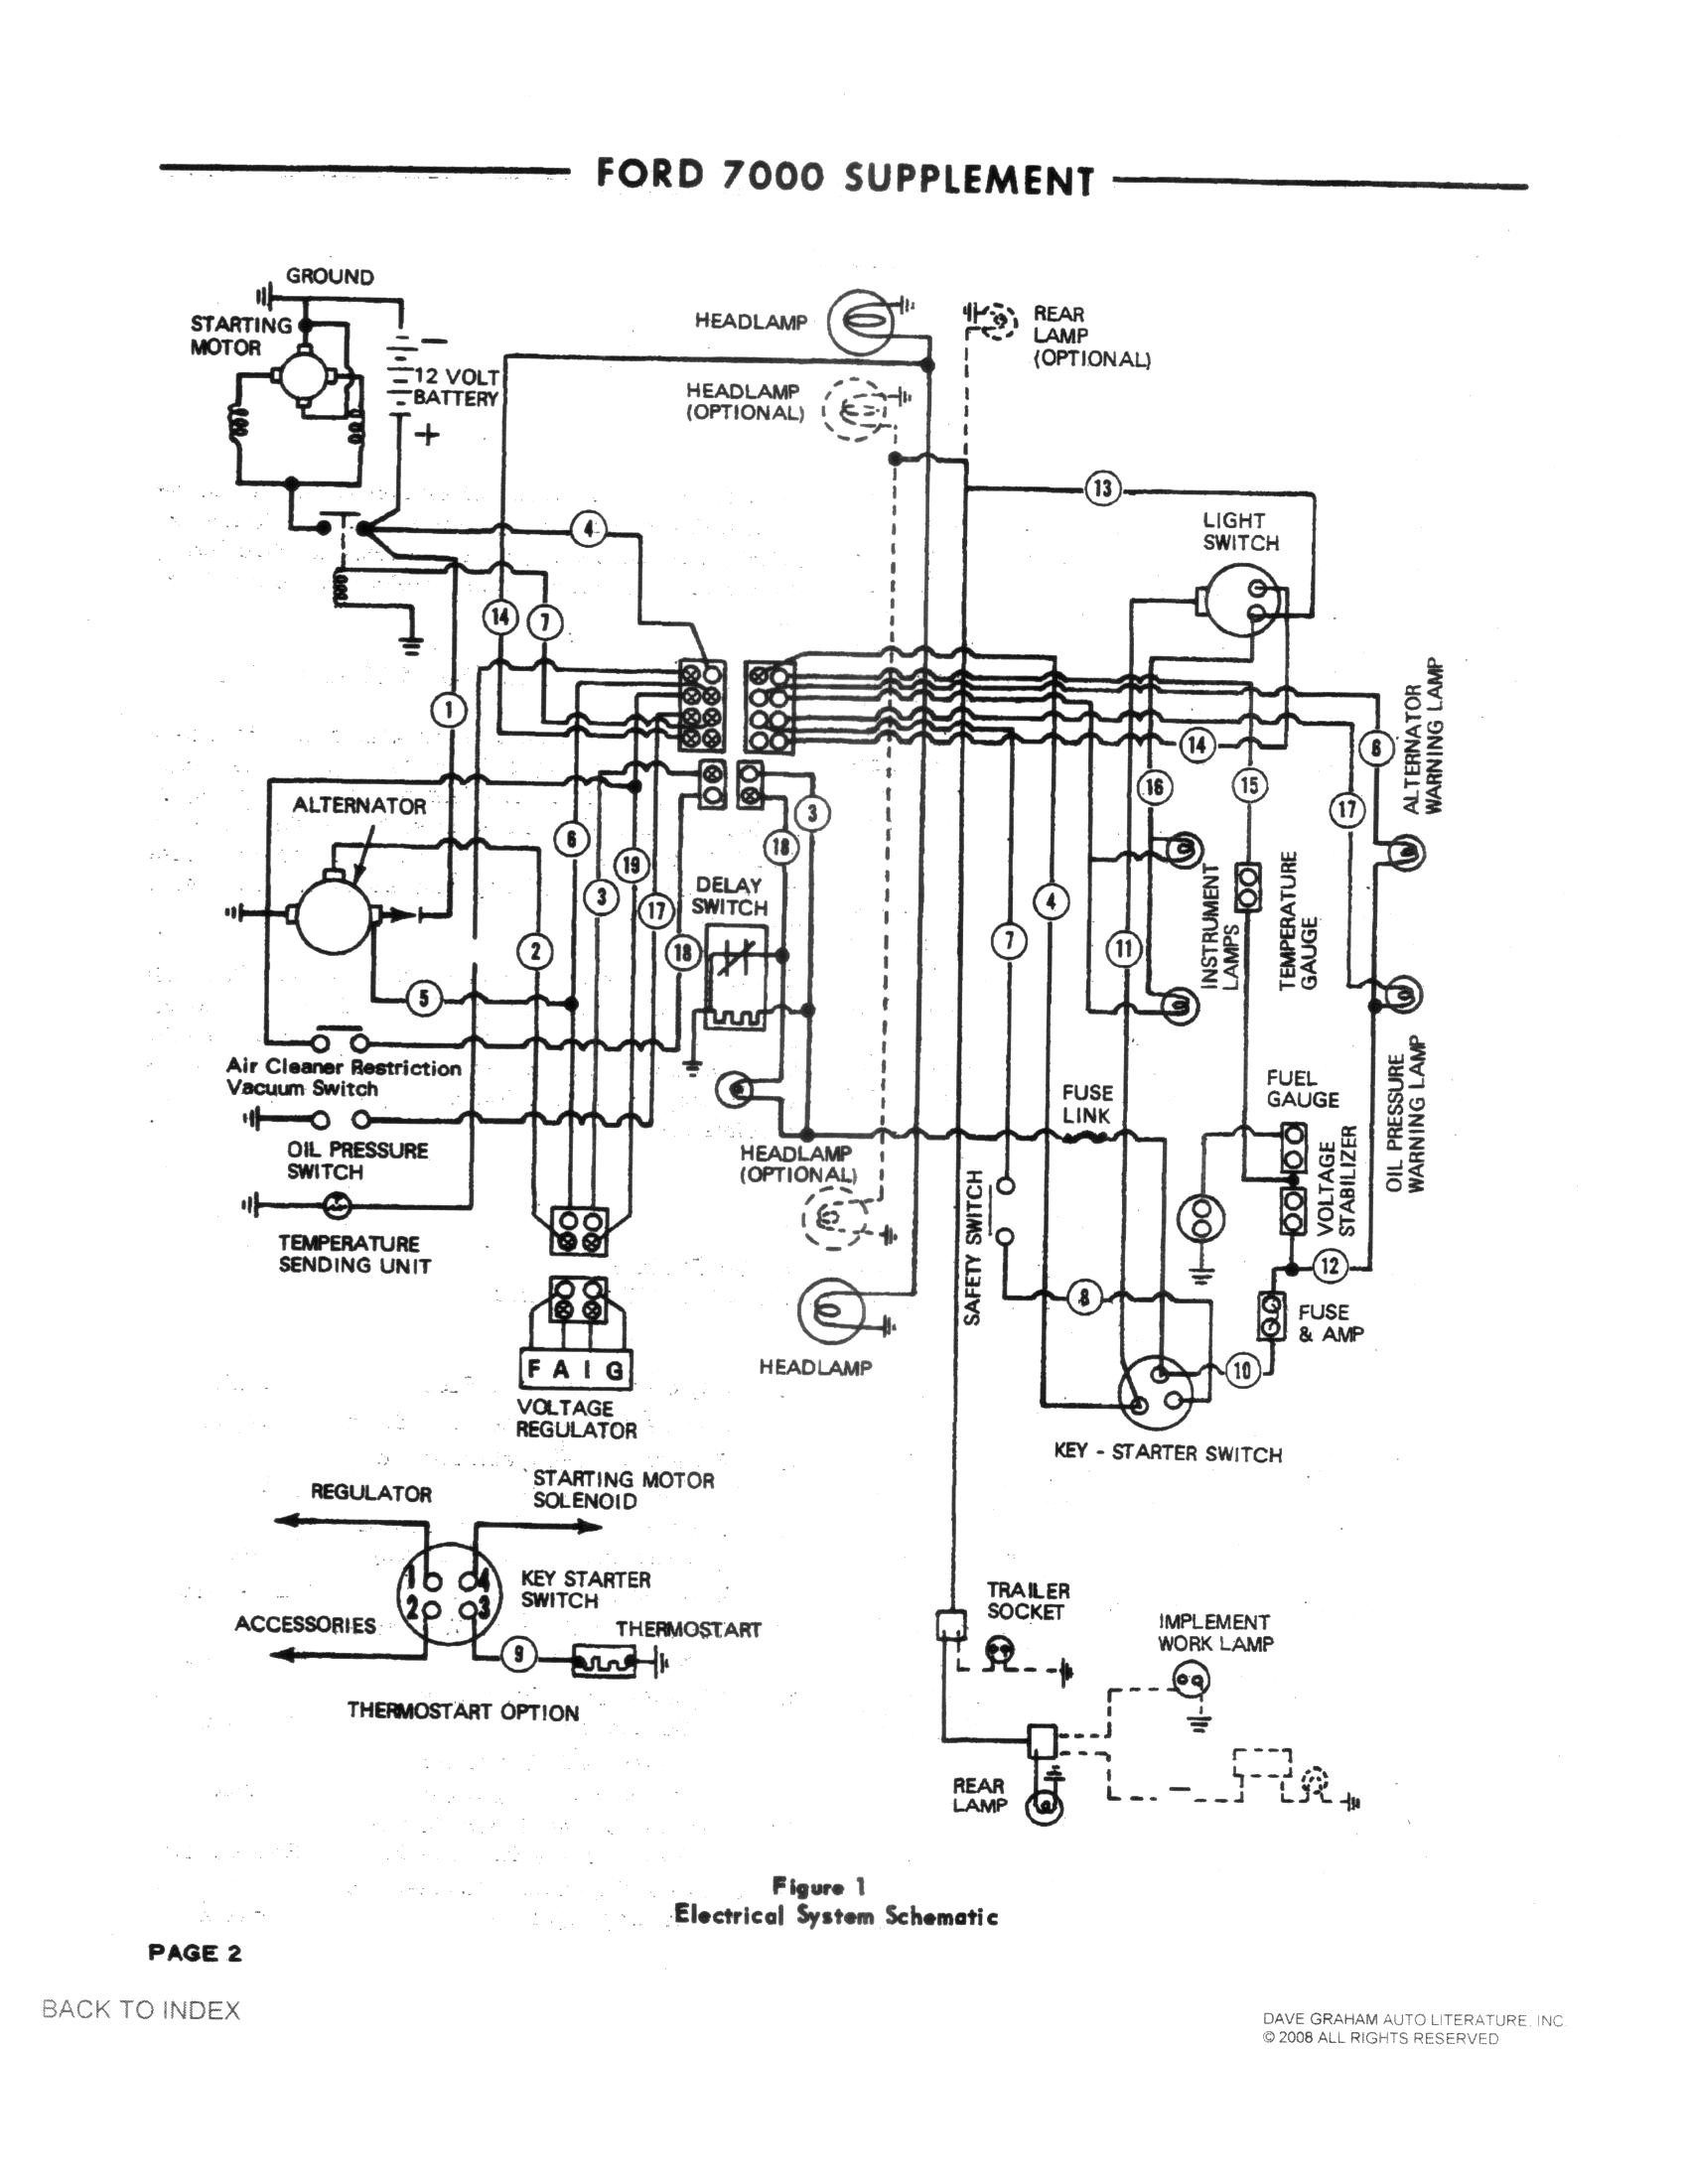 Ford 4600 Wiring Schematic Wiring Diagram Database